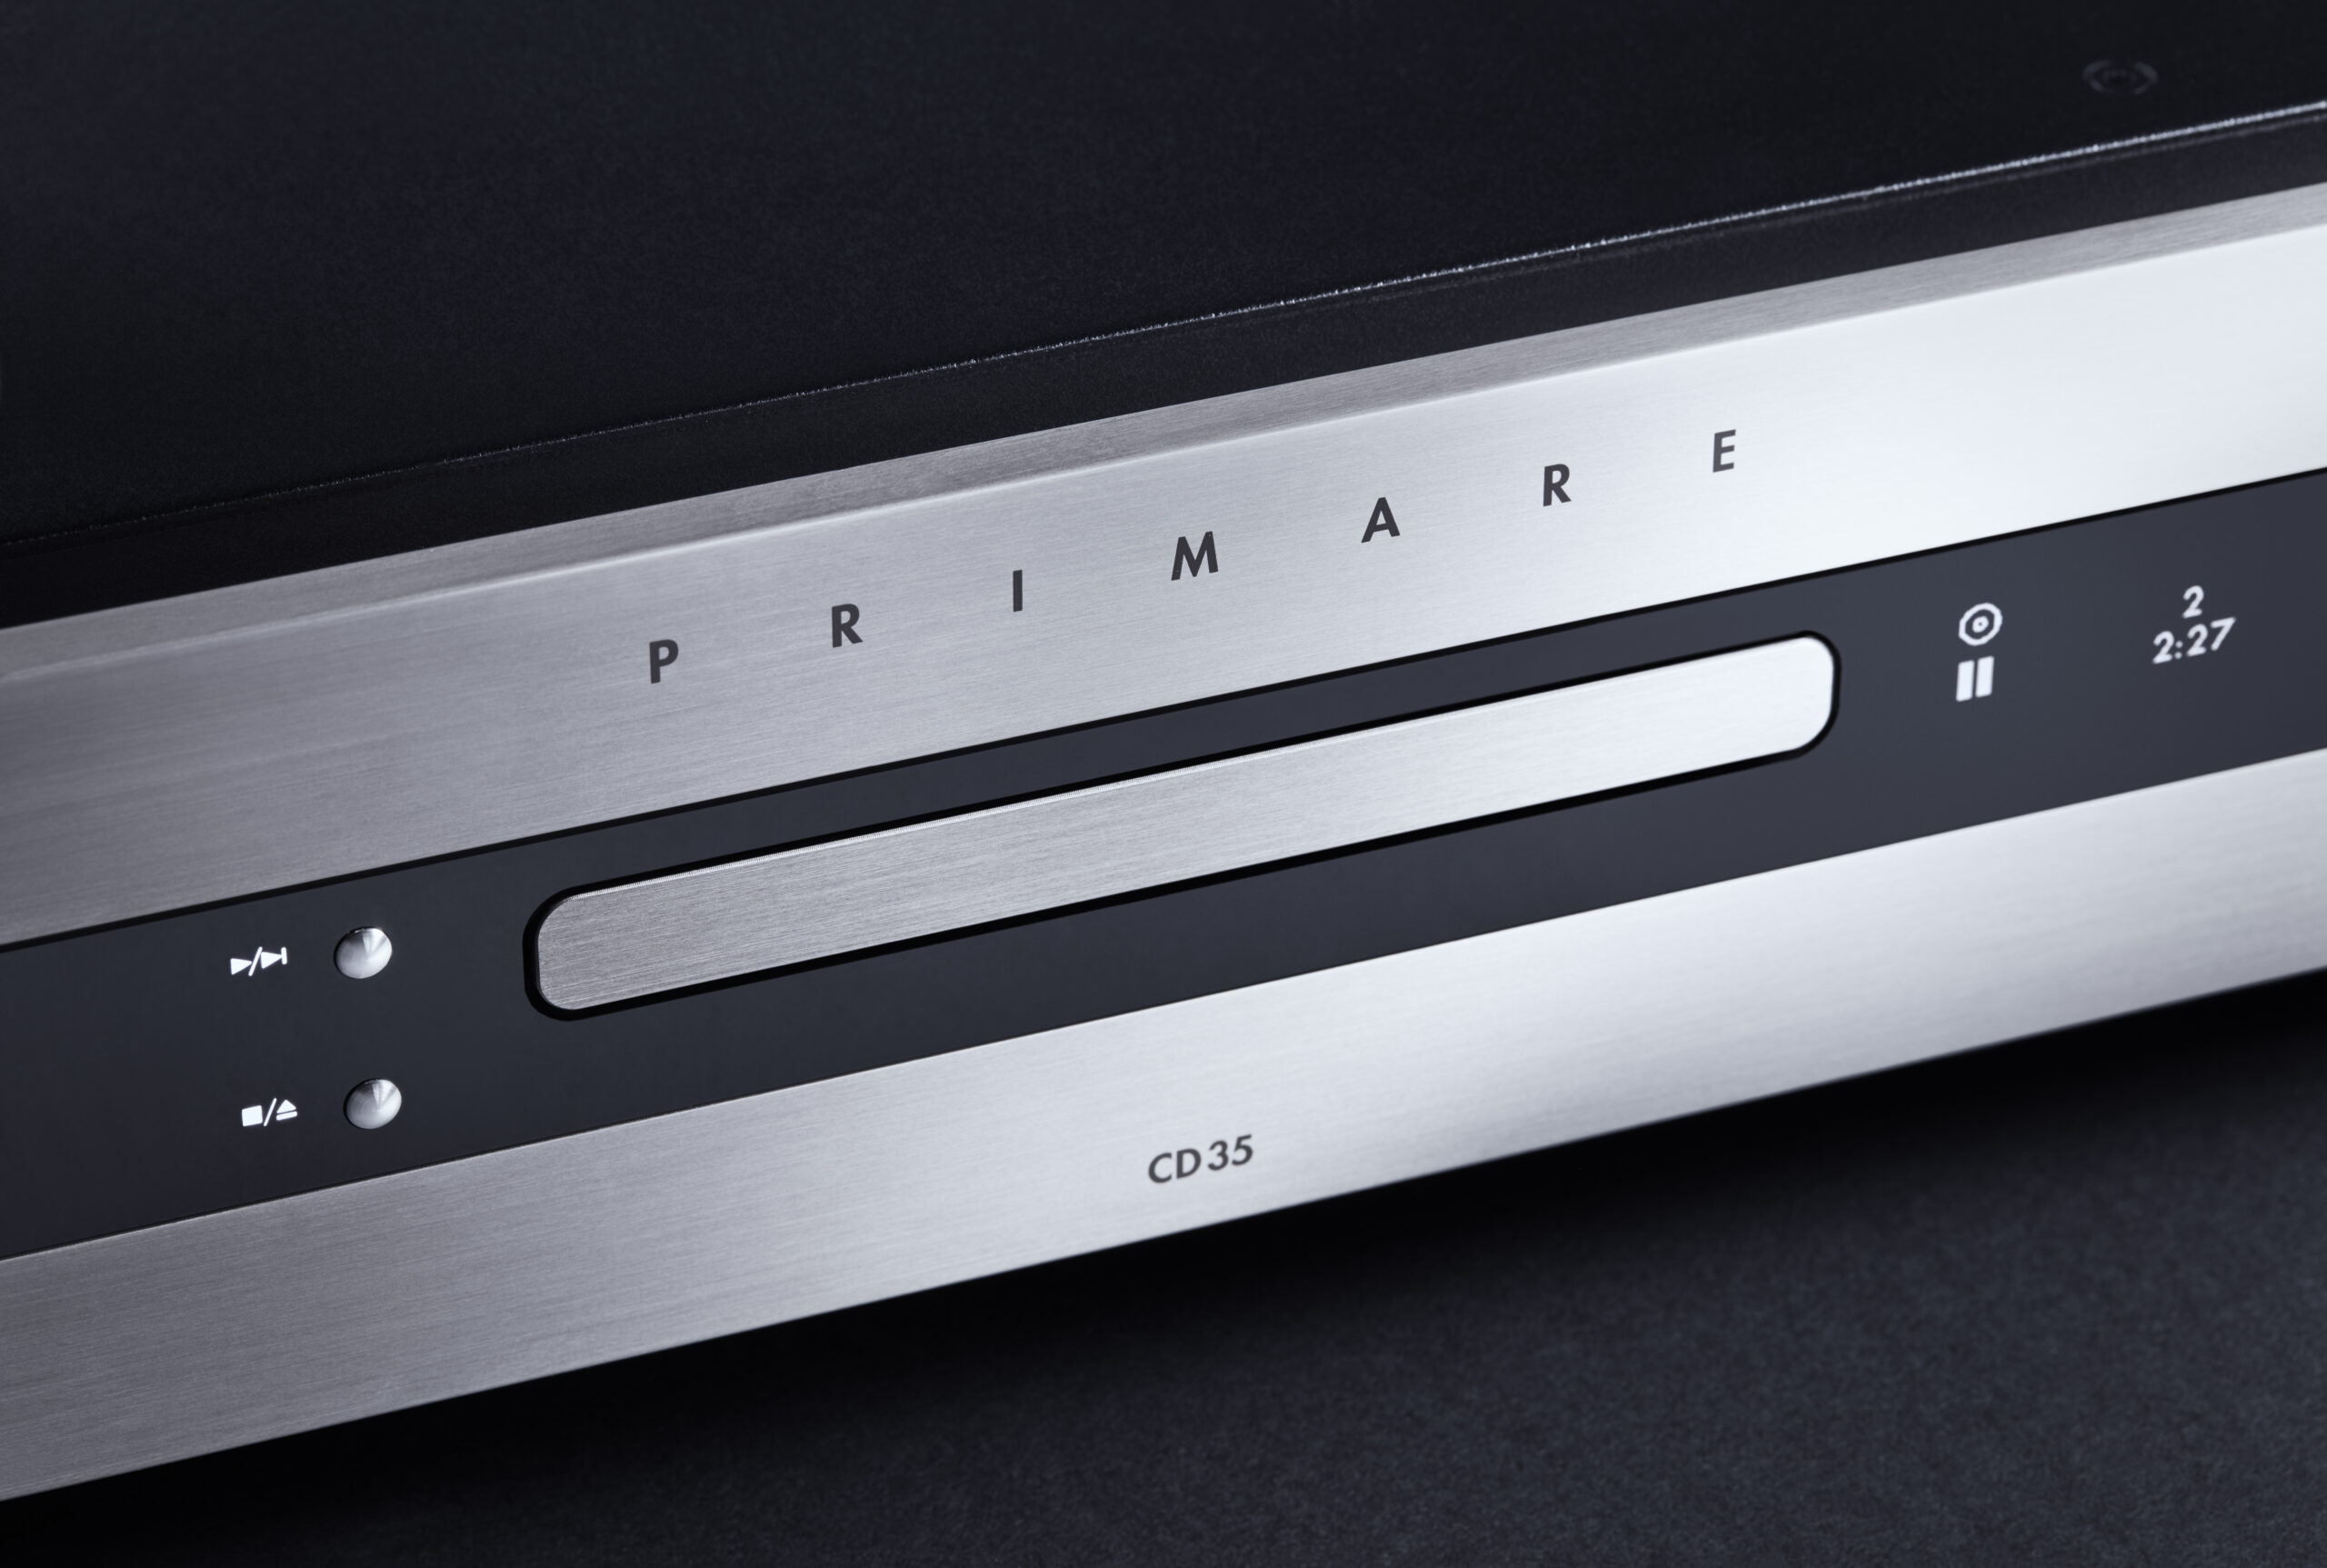 Primare CD35 Prisma CD and network player front titanium close up